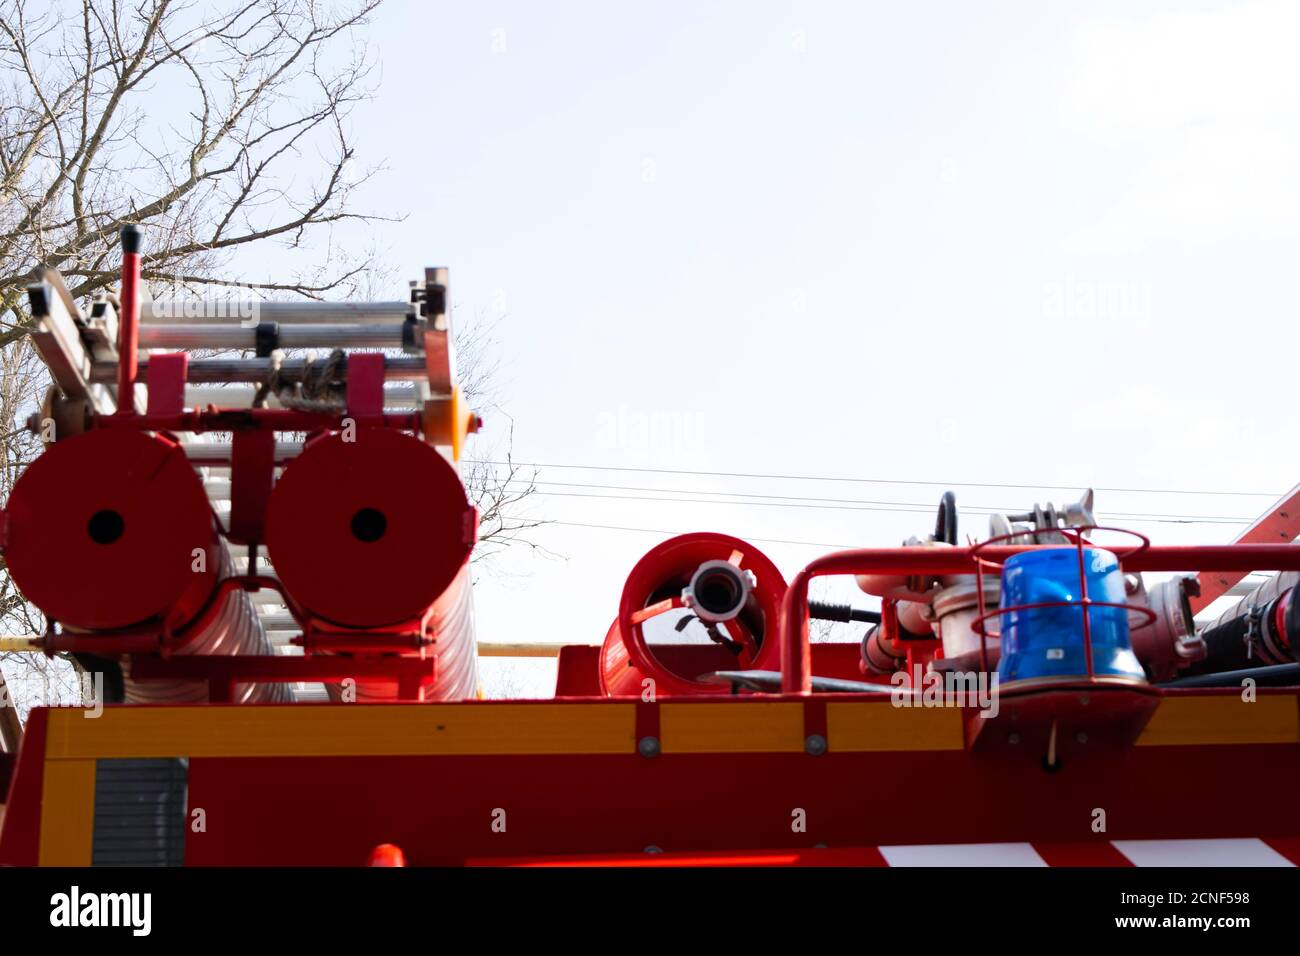 a fire truck, rear view of canisters for transporting suction hoses with fire escapes attached to them, copy space Stock Photo